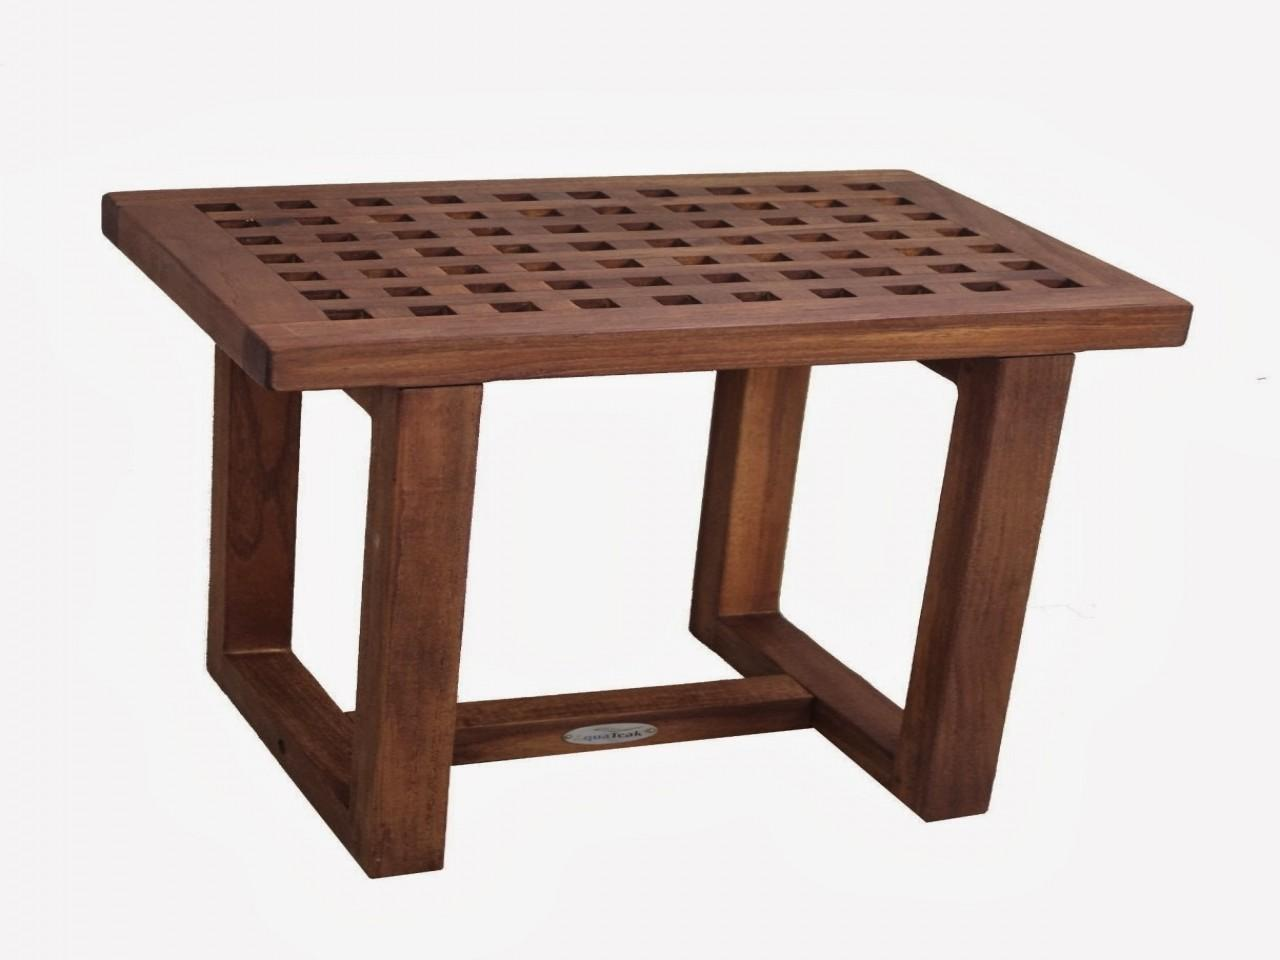 Bathroom Bench Chairs Stools Benches Teak Shower